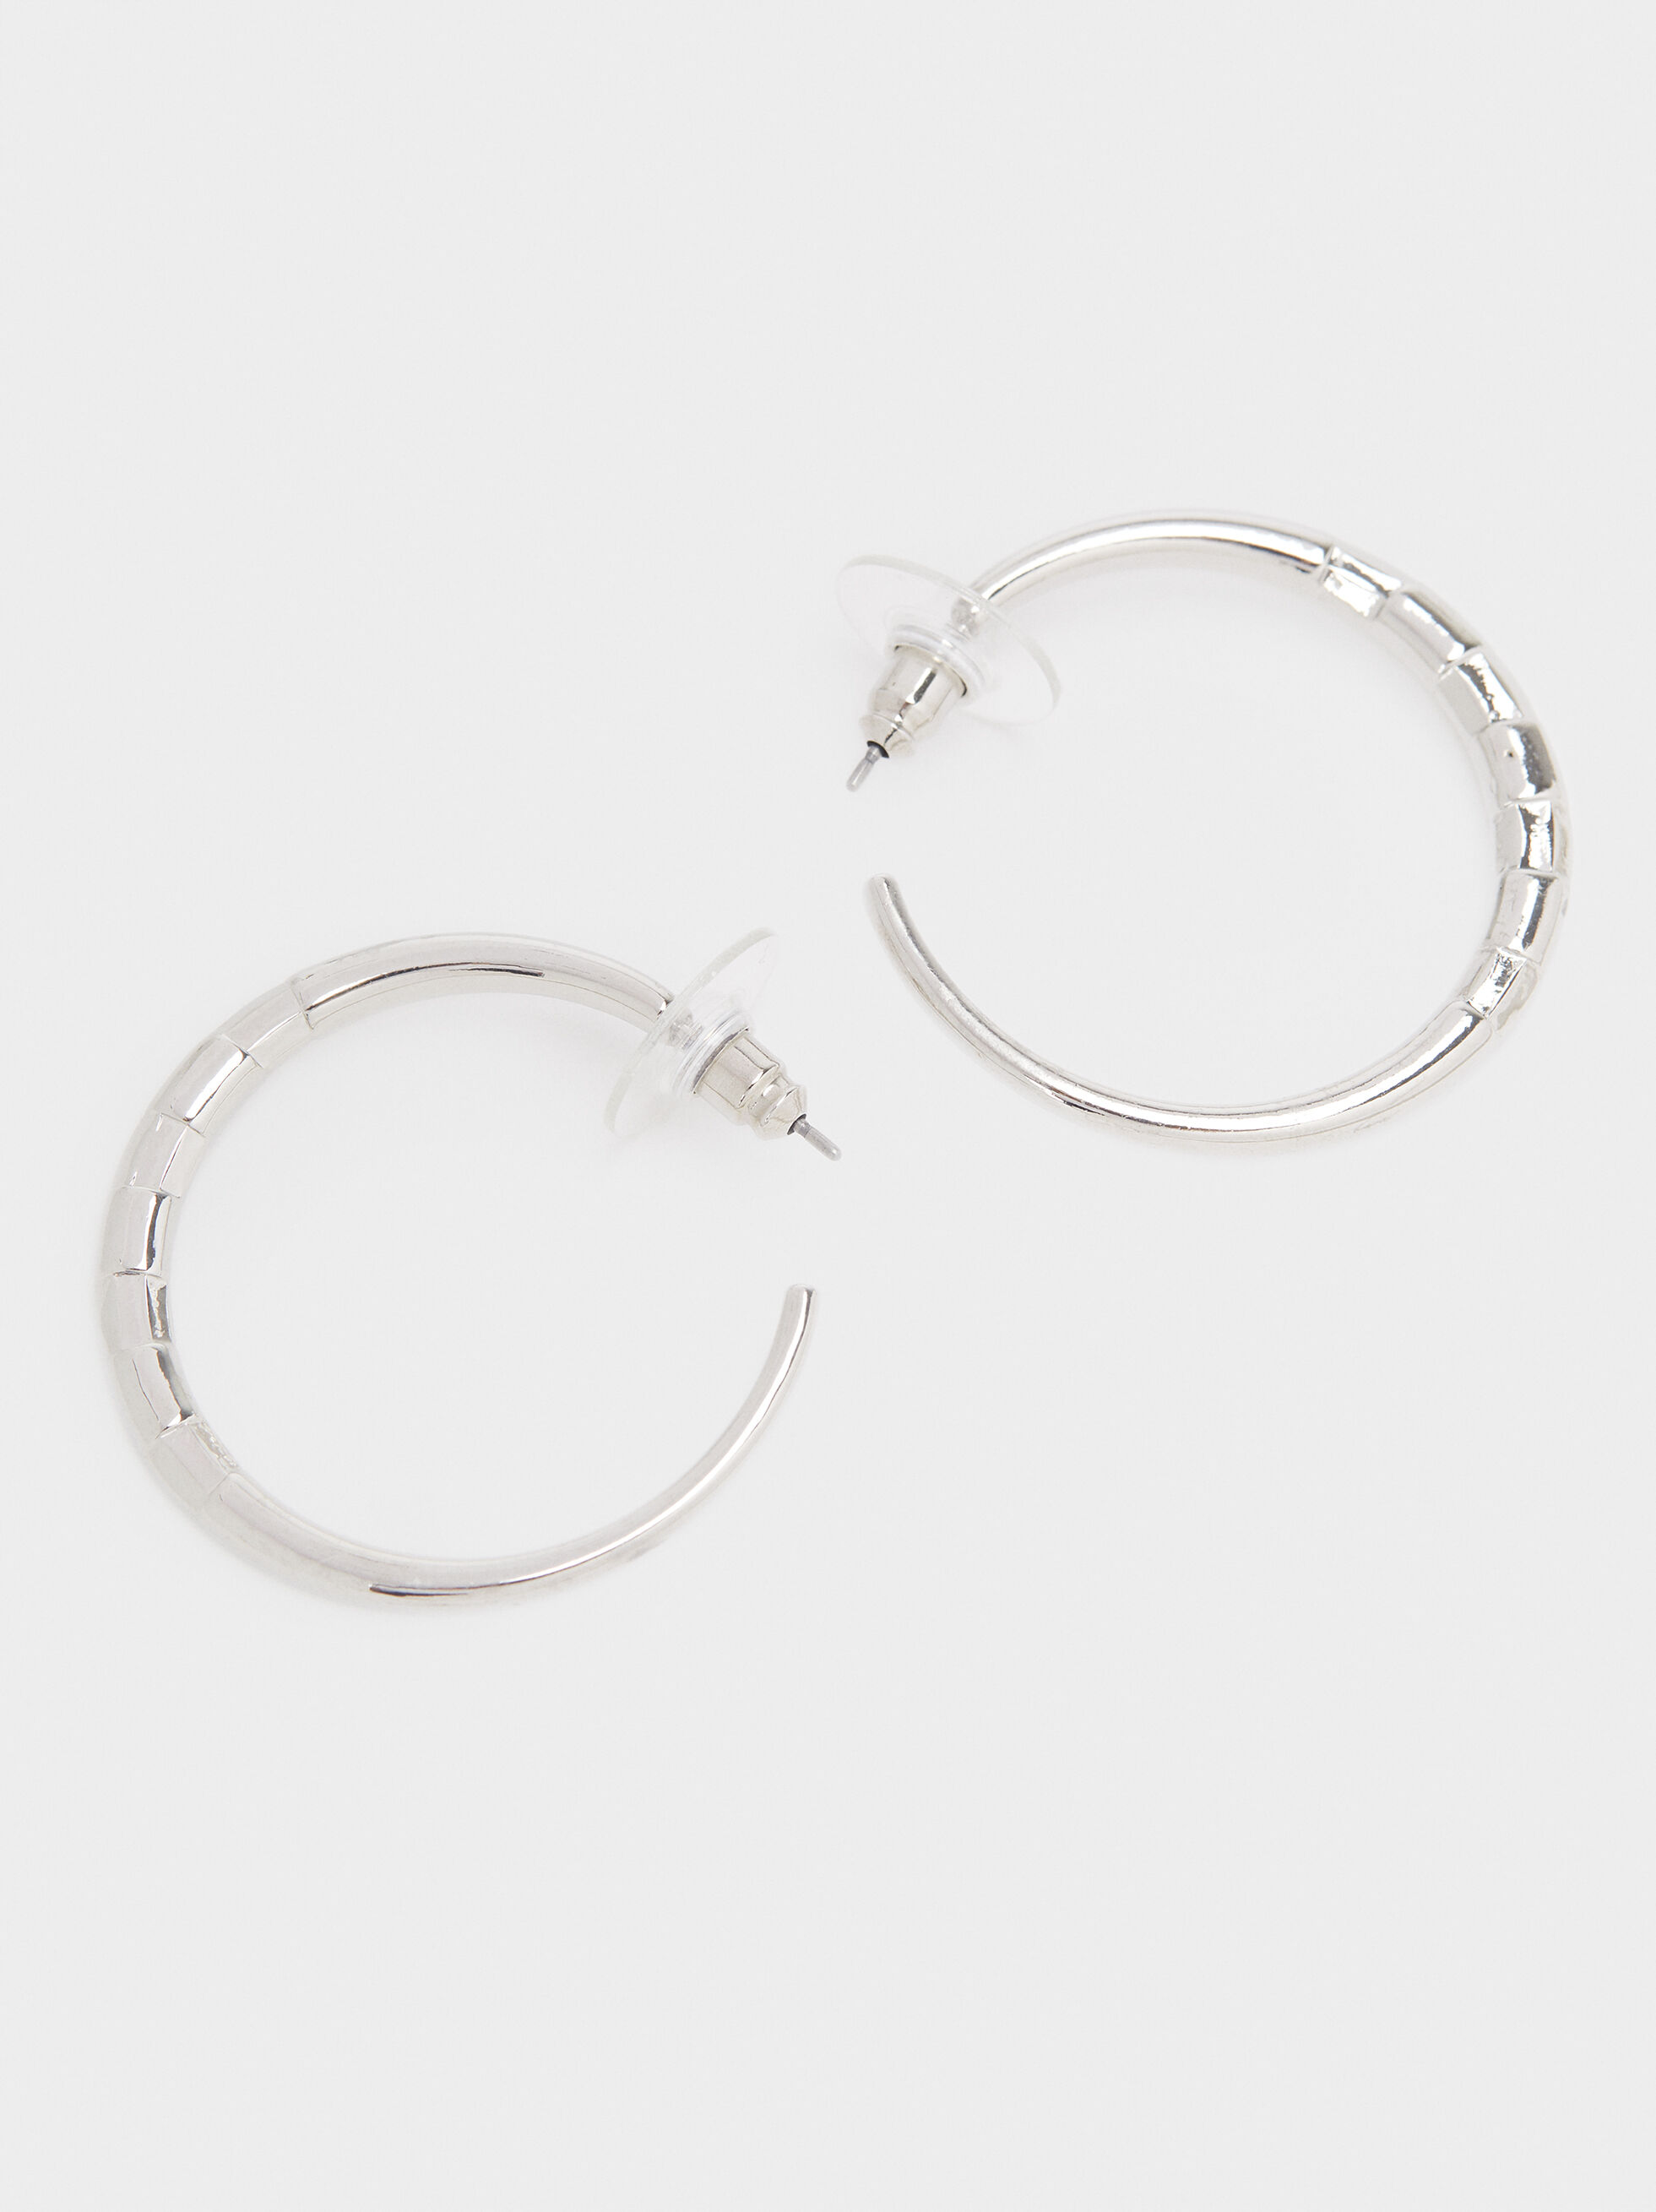 Small Silver Hoop Earrings, Silver, hi-res